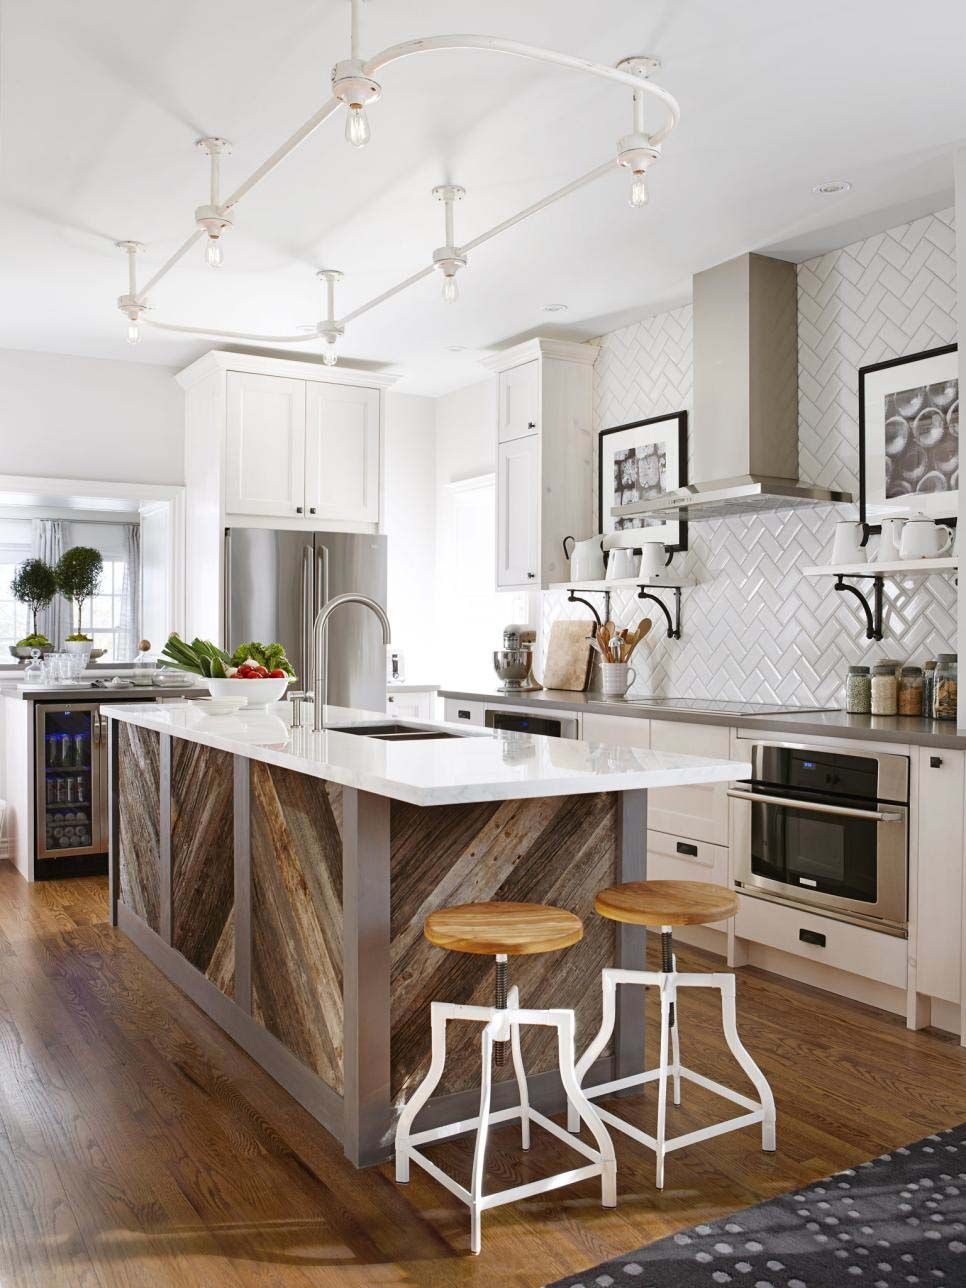 30+ Brilliant kitchen island ideas that make a statement | Storage ...